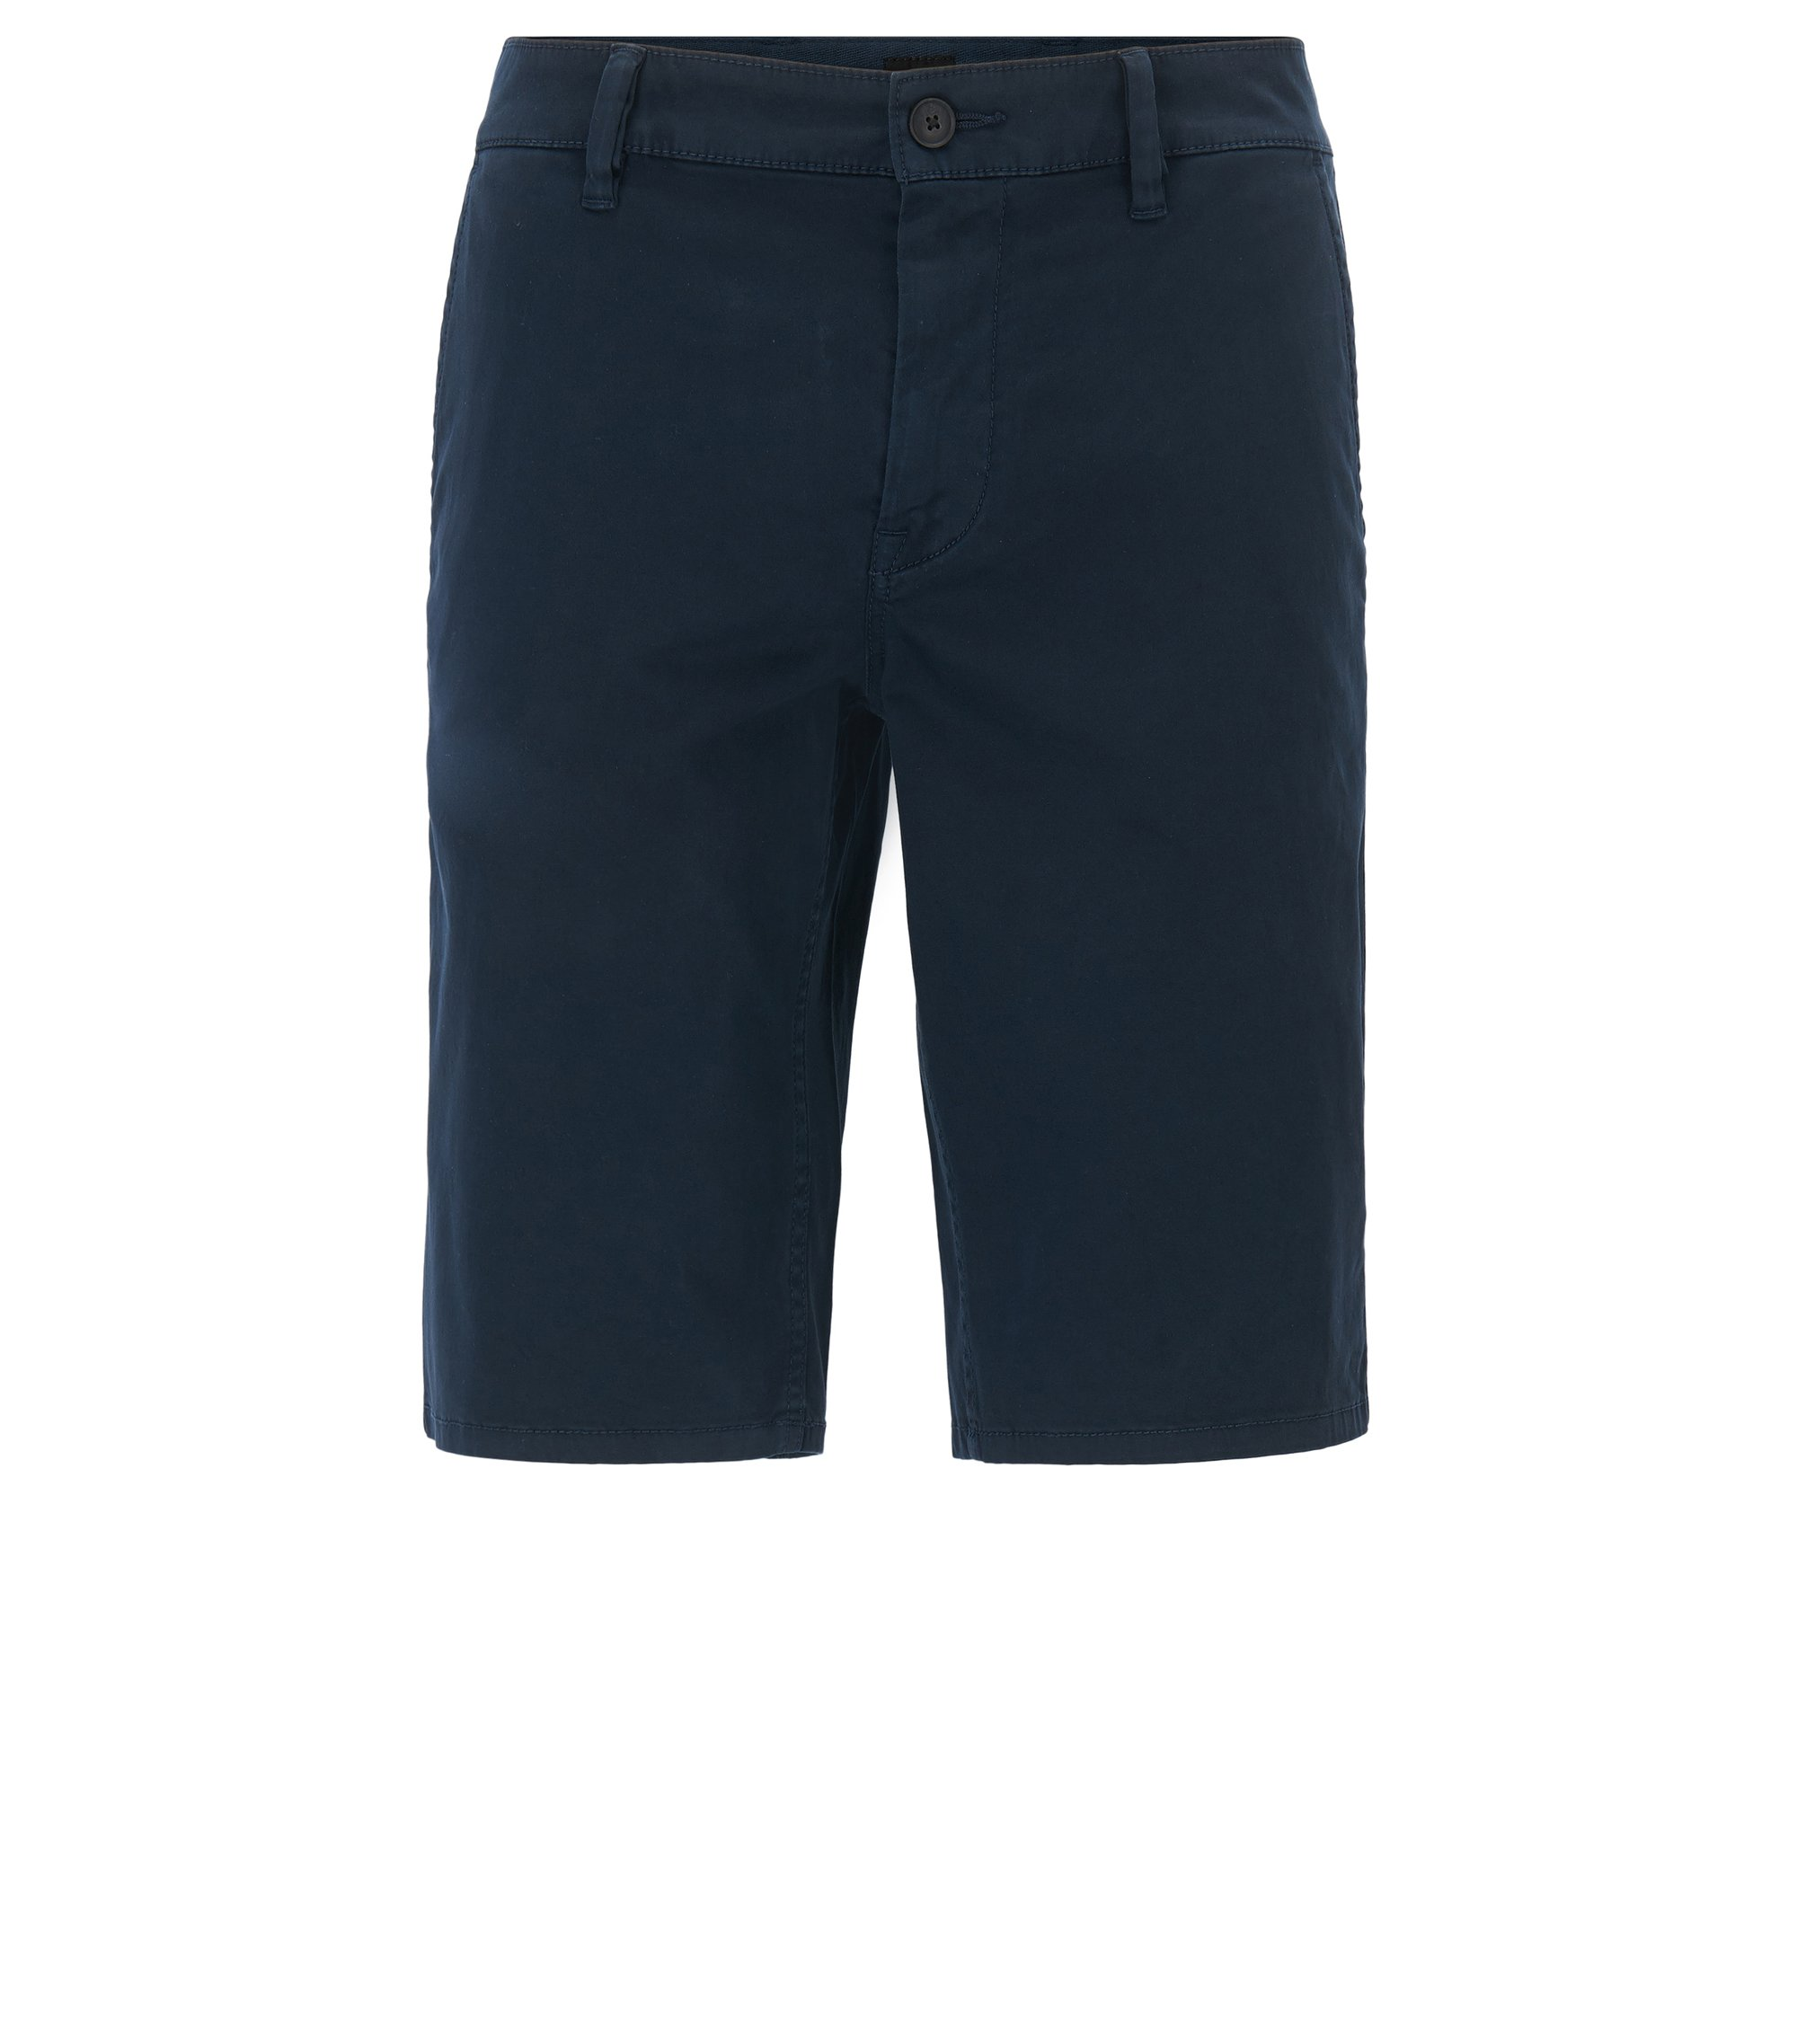 Stretch Cotton Chino Short, Slim Fit | Schino Slim Shorts D, Dark Blue